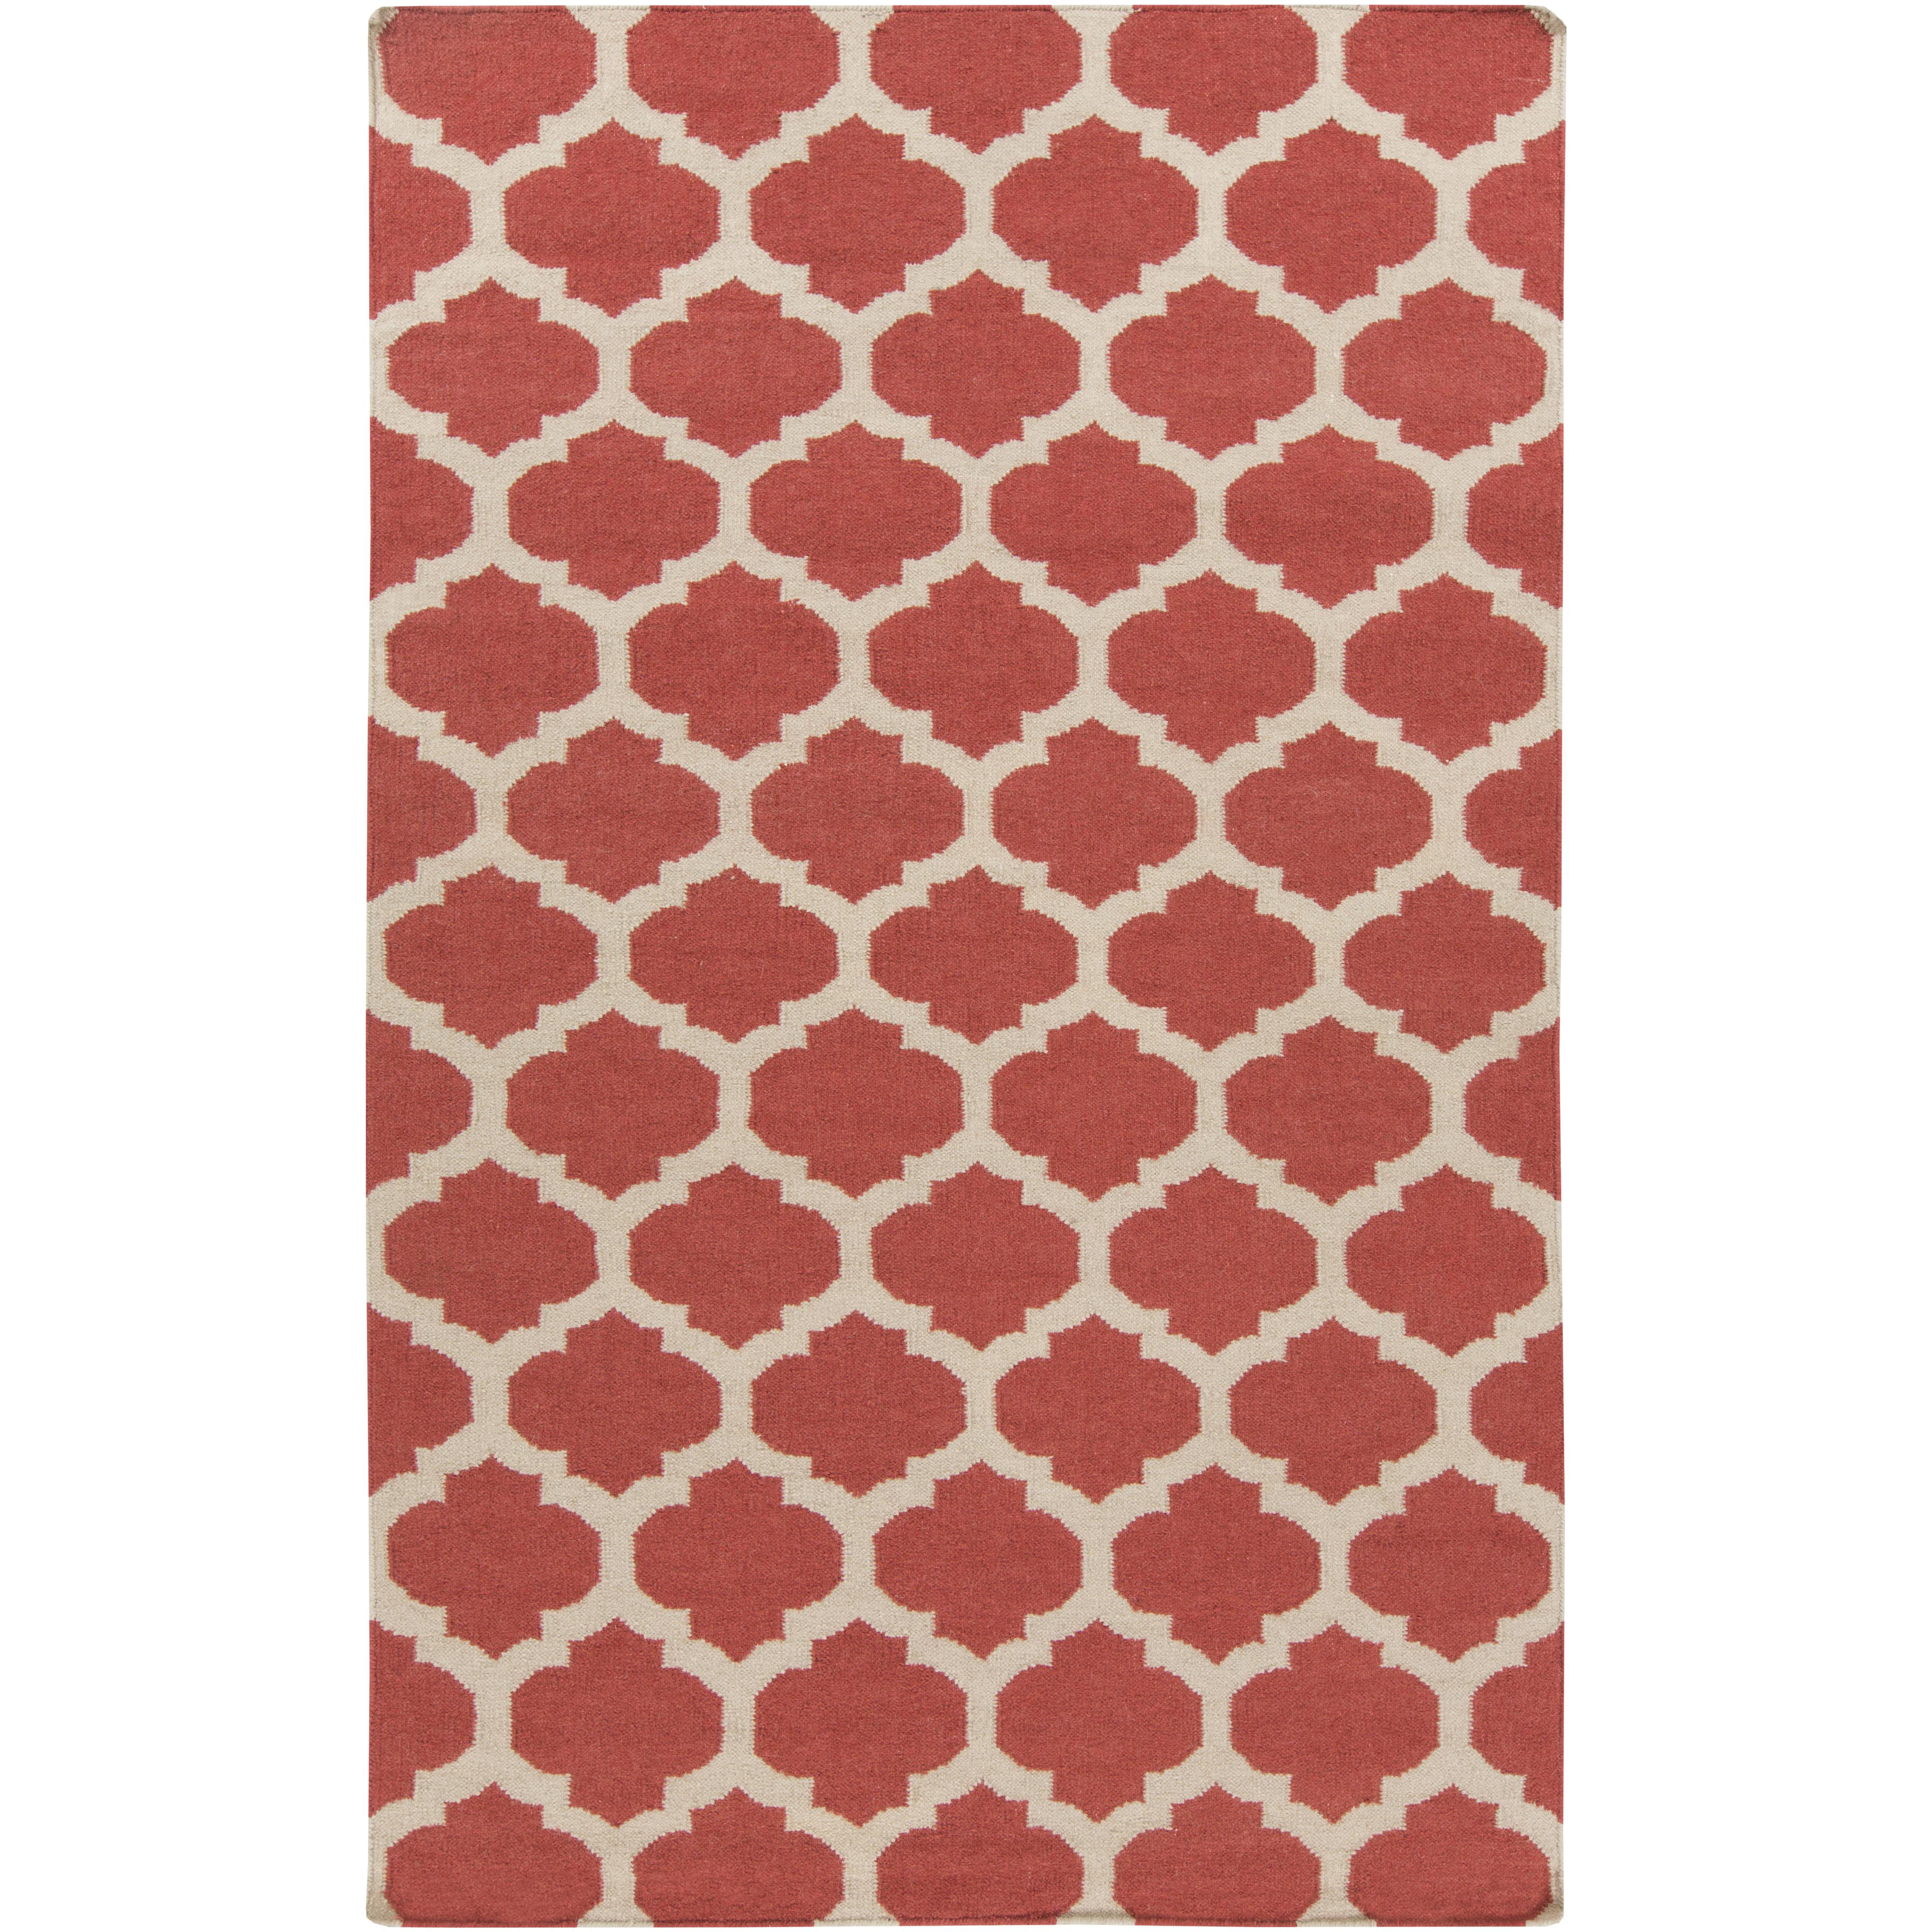 "Surya Rugs Frontier 3'6"" x 5'6"" - Item Number: FT542-3656"